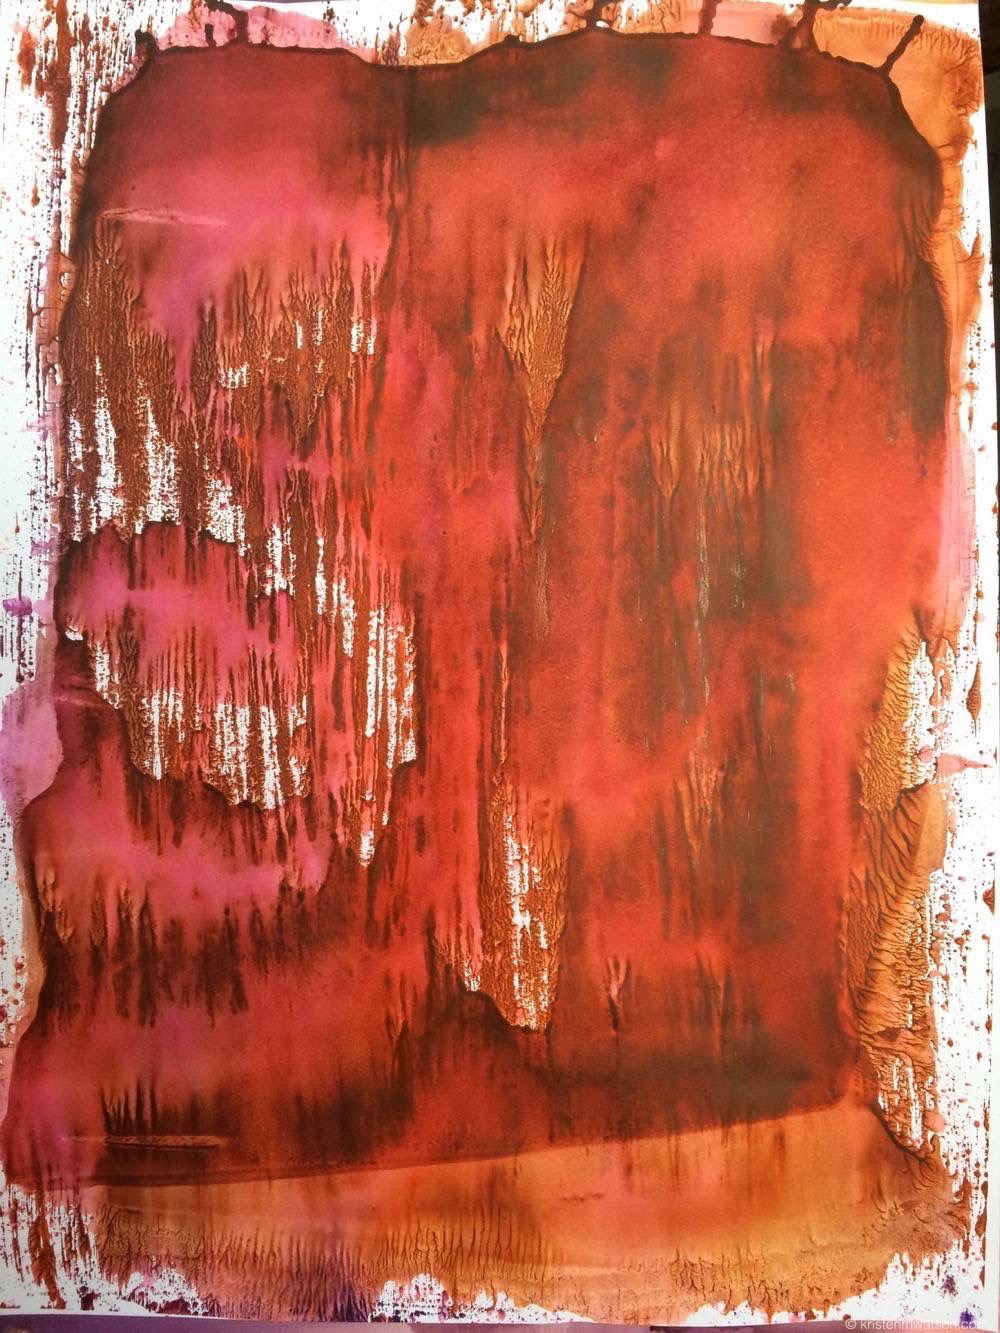 Red Orange Monotype_2014_Monotype_24x18in_©2015 kristenmwatson 2.jpg